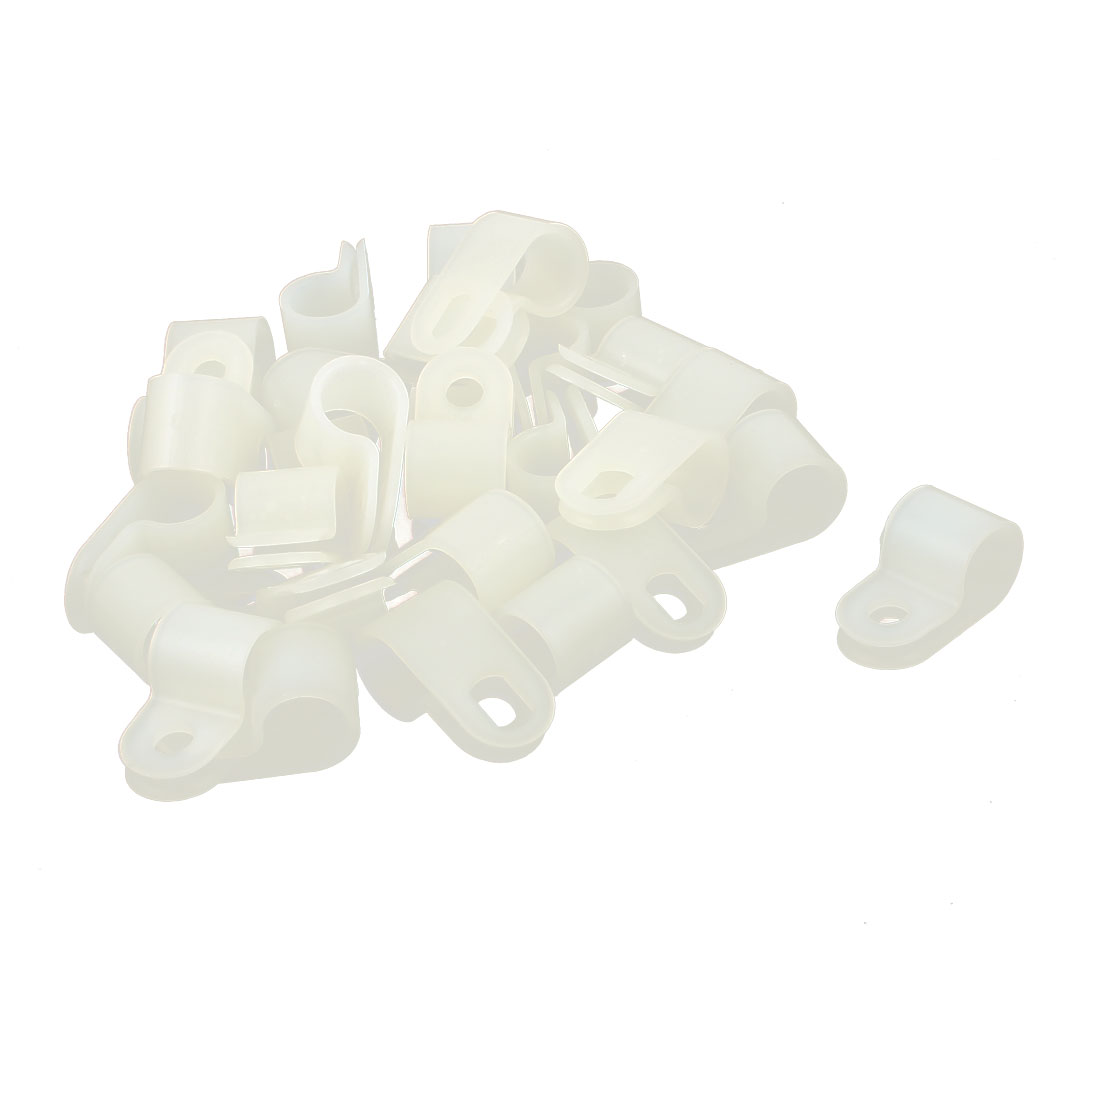 30Pcs White Plastic R Type Cable Clip Clamp for 8.4mm Dia Wire Hose Tube